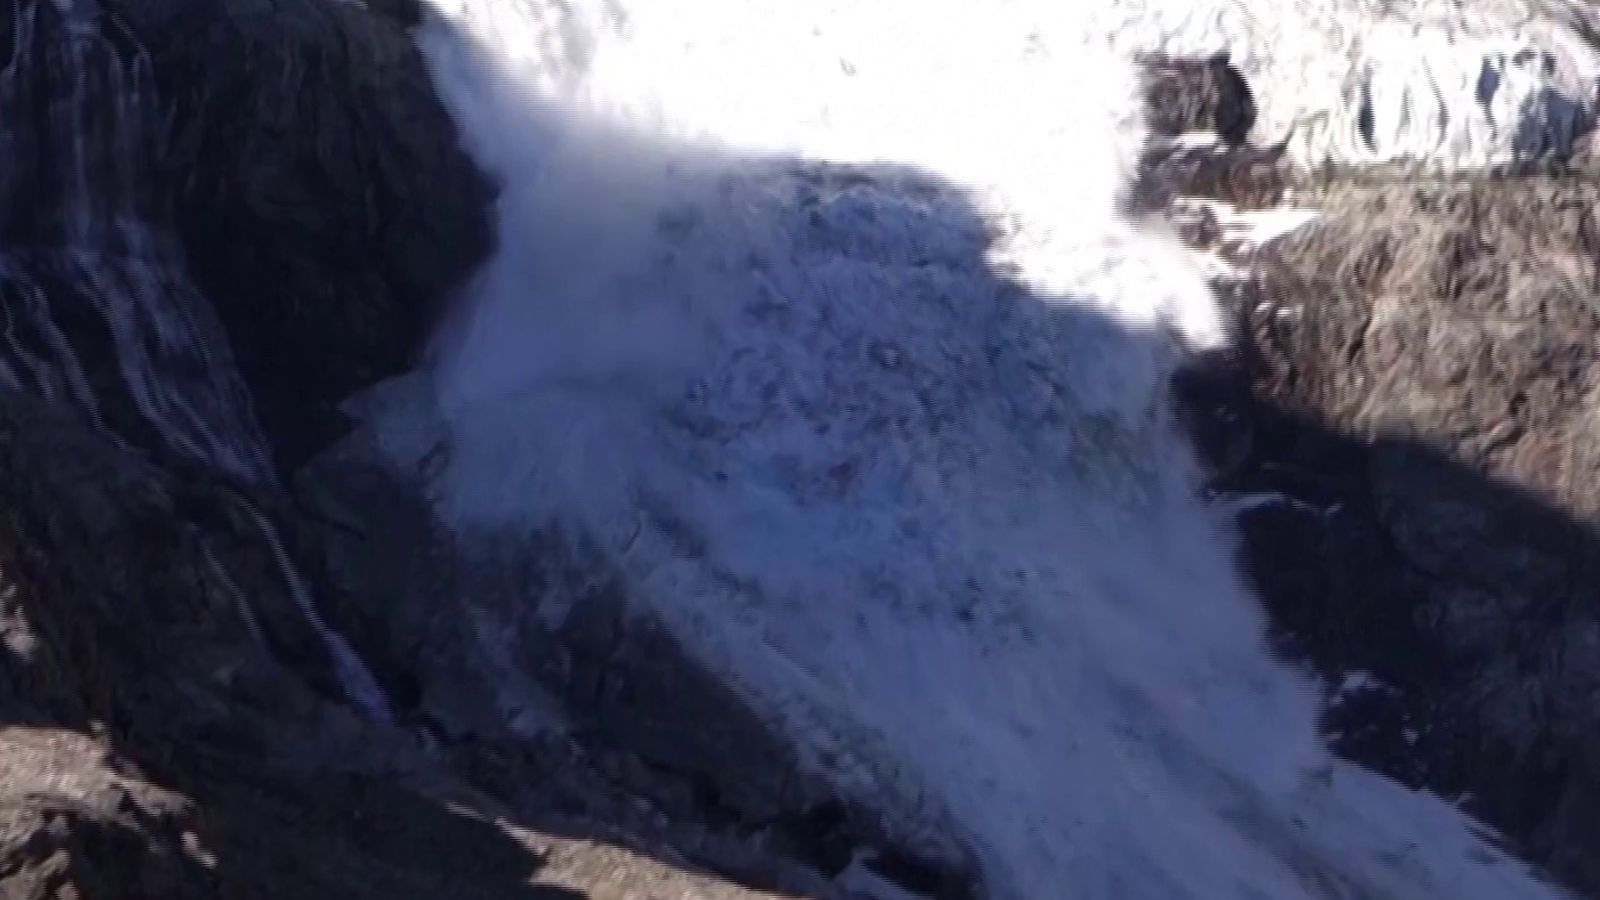 Swiss glacier collapses in front of onlookers | World News - Sky News